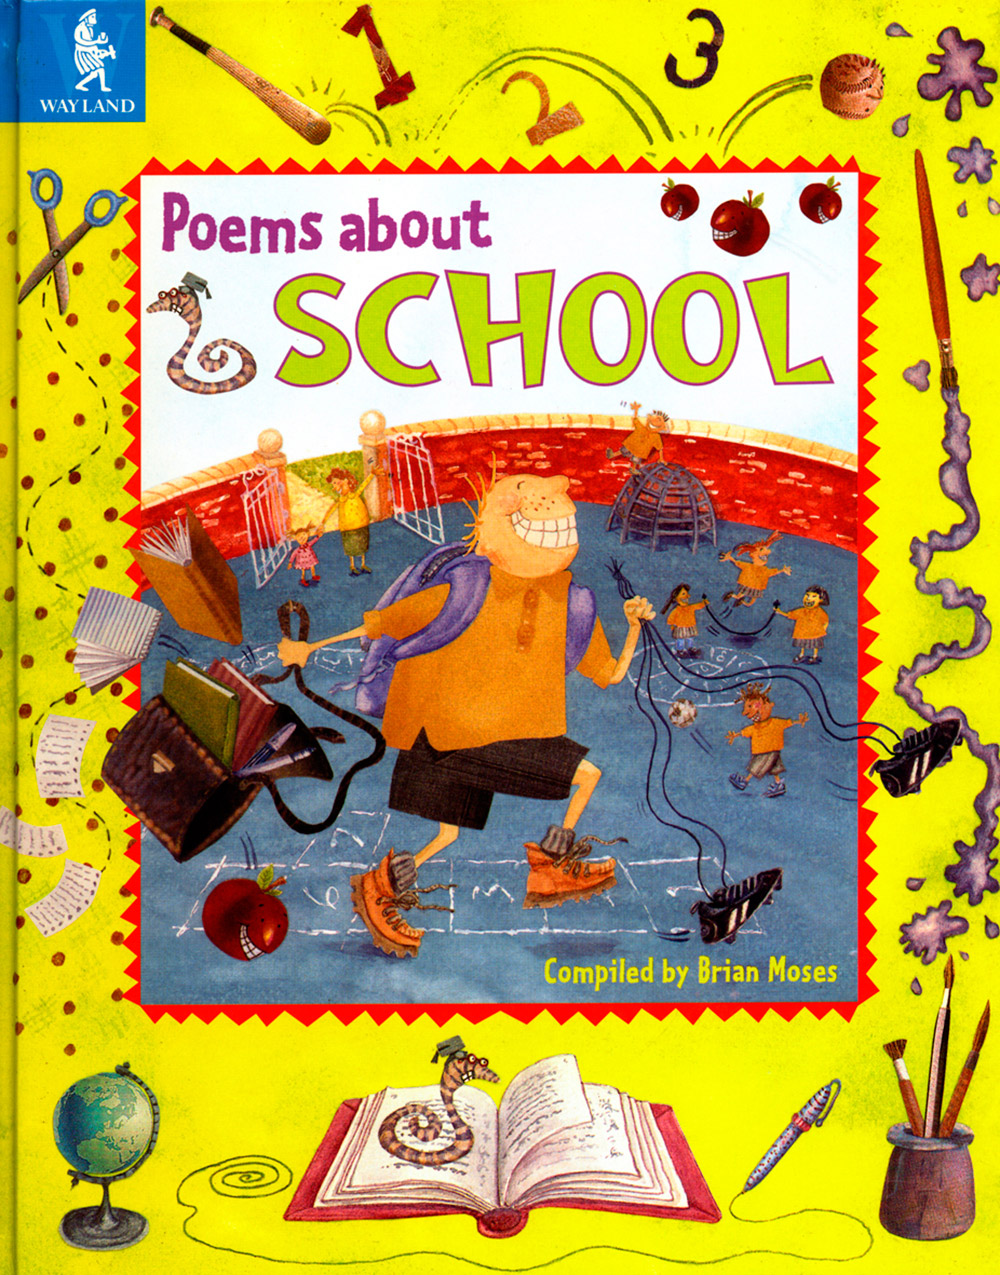 Poems about School book cover design